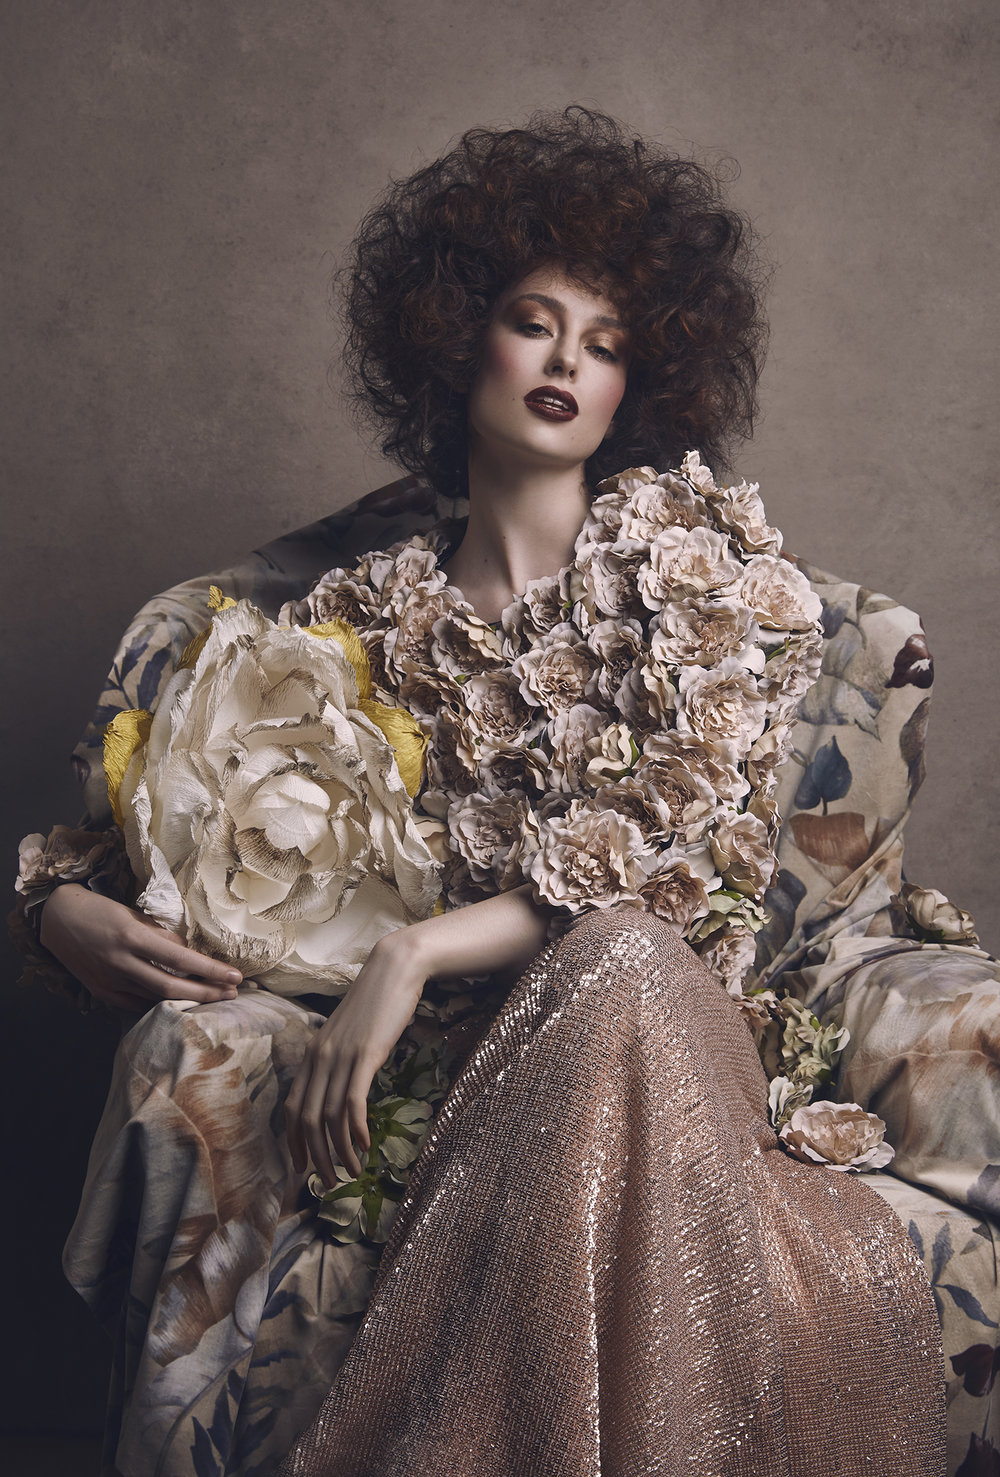 The-Flower-Book-by-Dana-Cole-floral-fashion-model-fashion-photography-fine-art-photography-beauty-photo-floral-shoot-vanity-fair-1.jpg